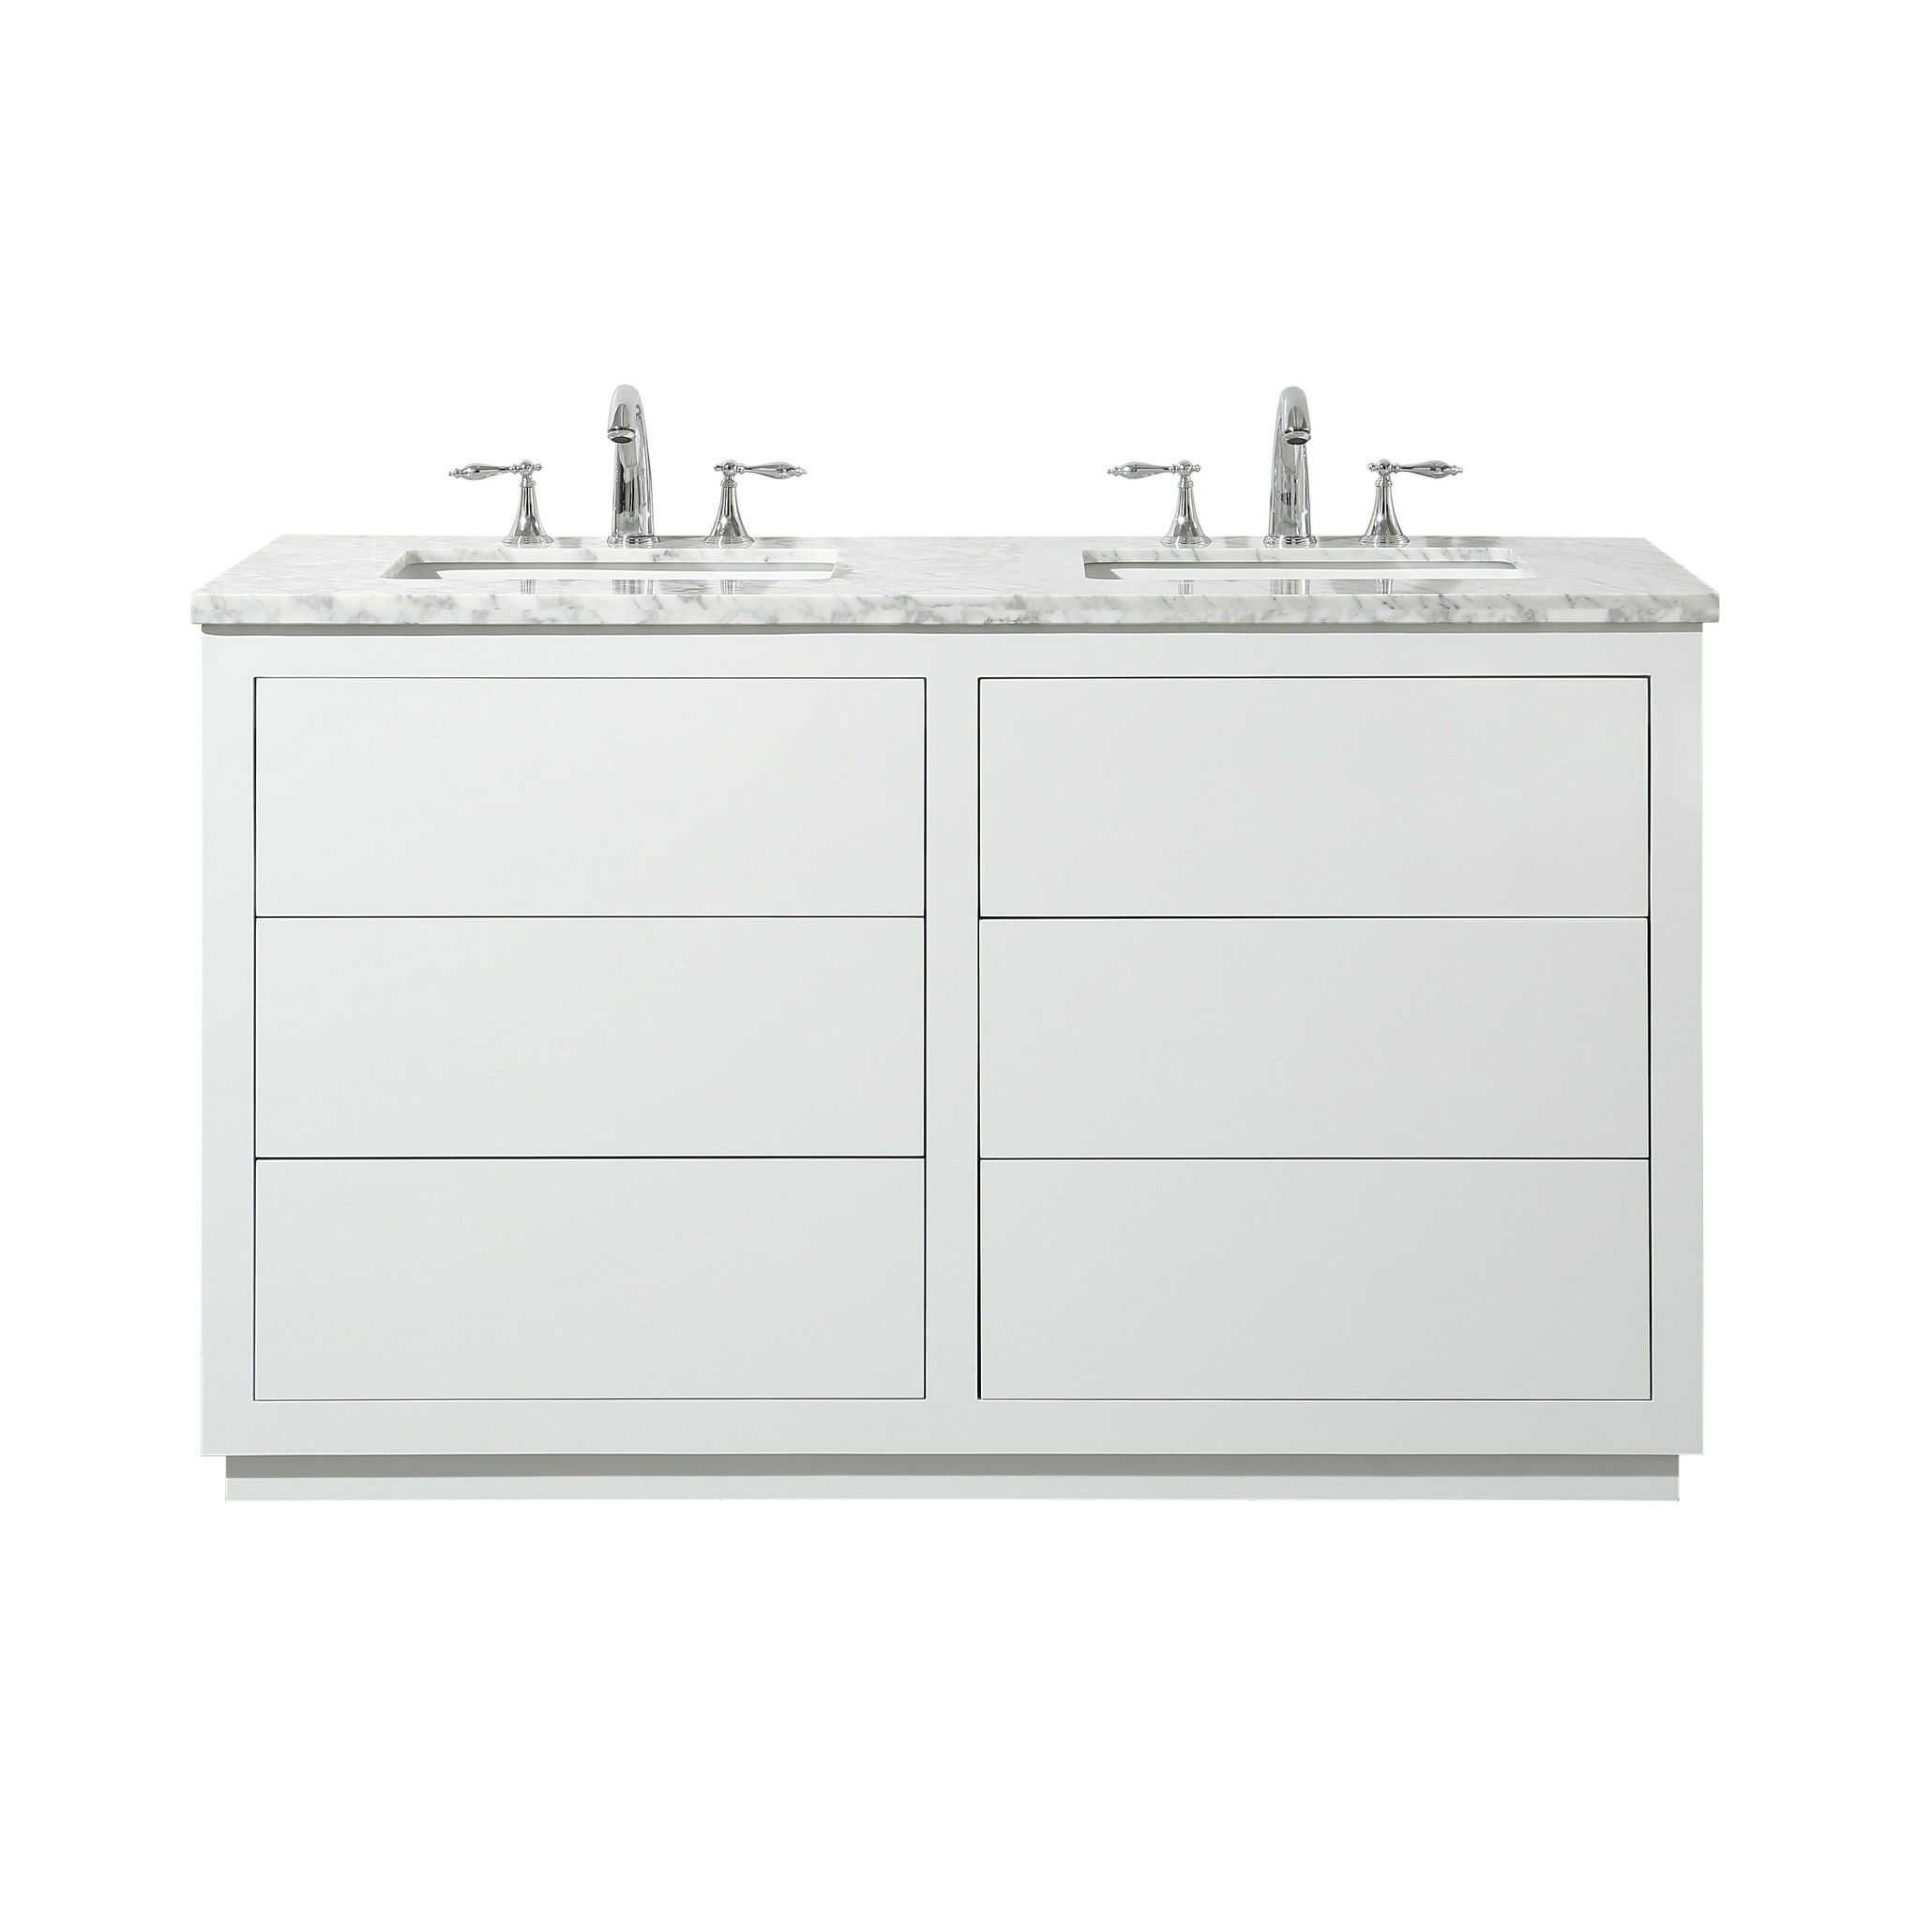 Stufurhome Lang 56 Inch White Double Sink Bathroom Vanity Bathroom Vanity Double Sink Bathroom Vanity Double Vanity Bathroom